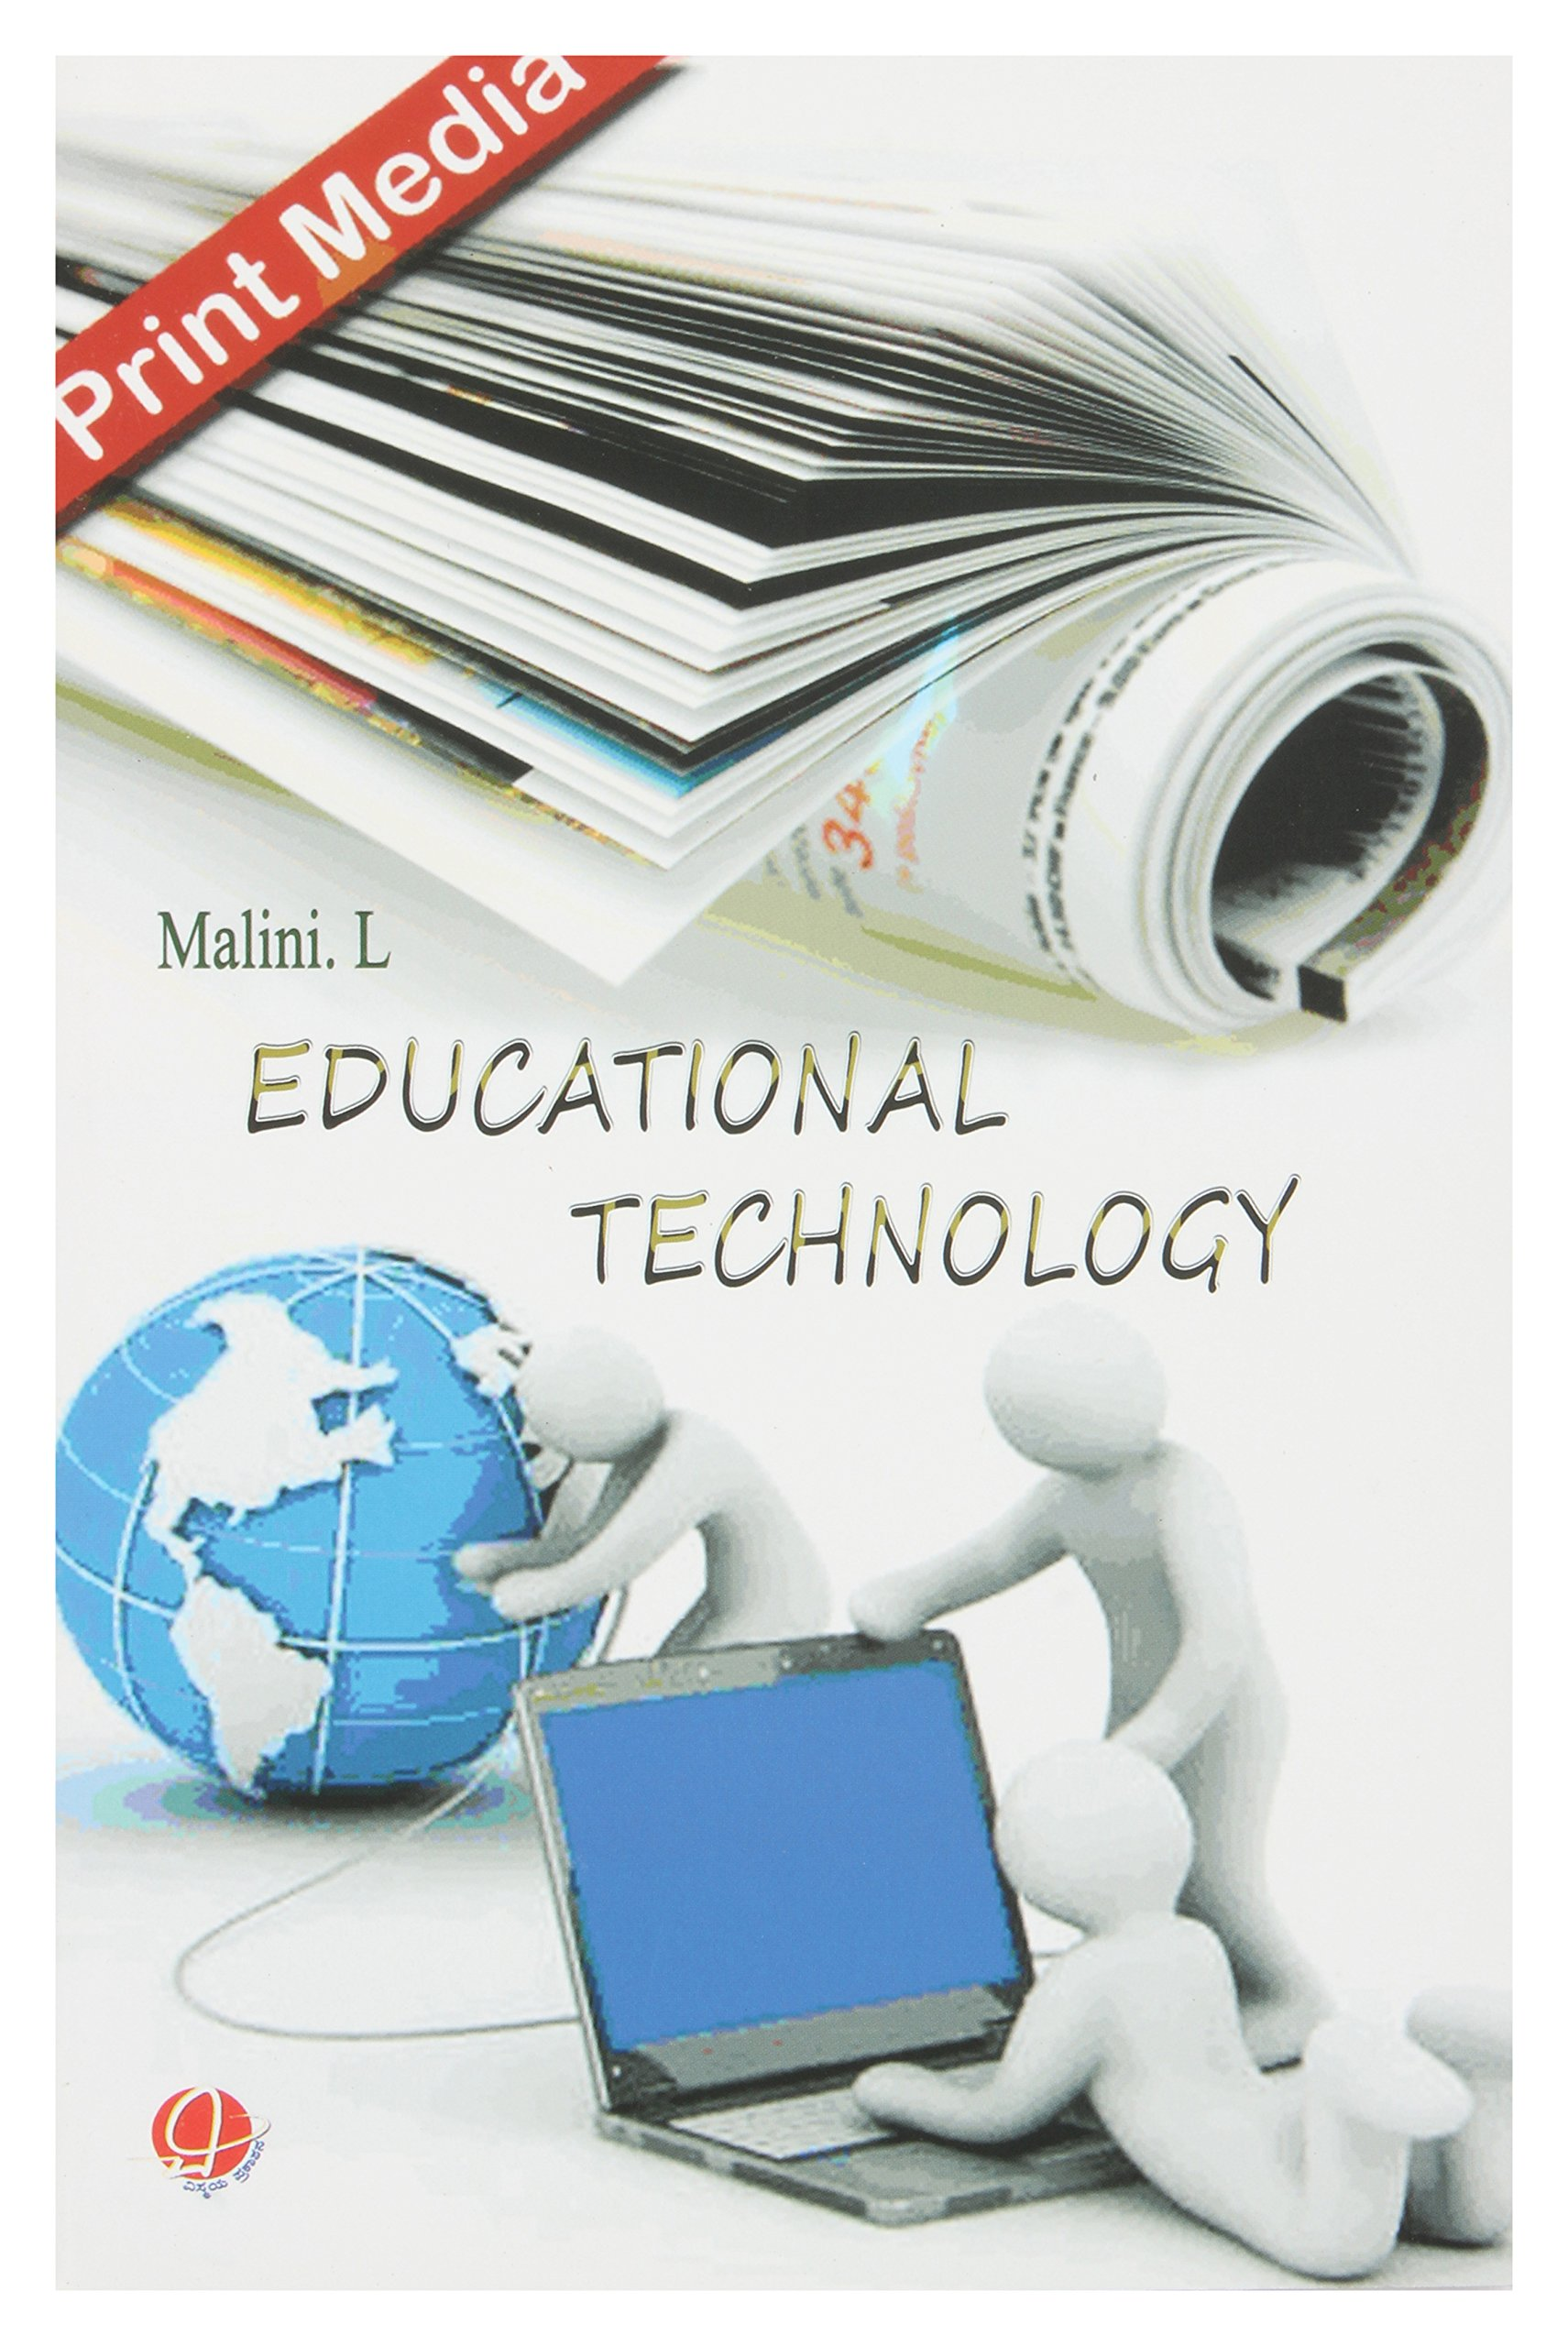 print media in educational technology